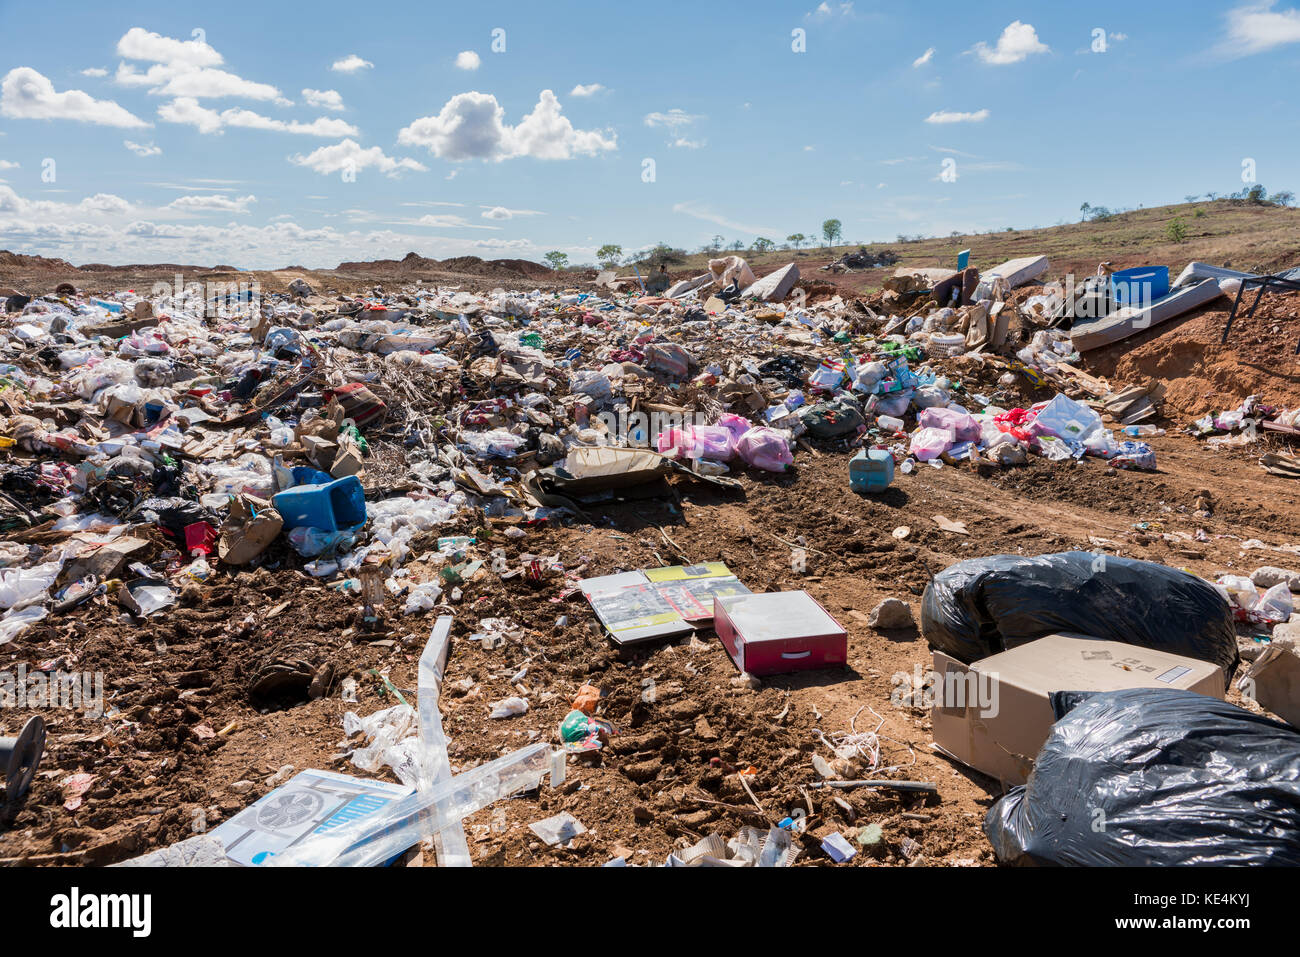 Piles of household refuse in dumping area at local tip - Stock Image